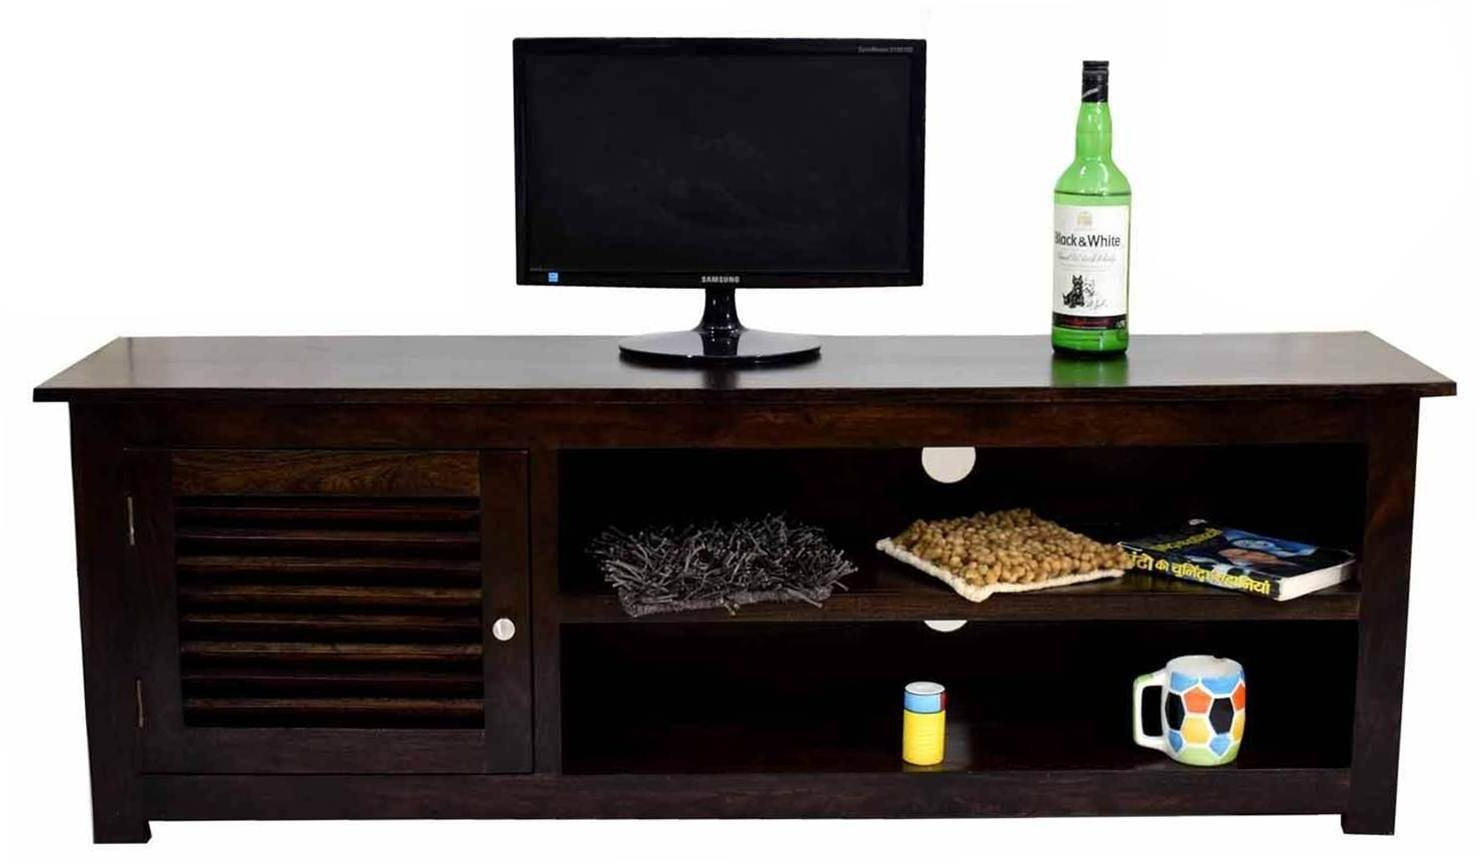 Daintree Dyna Solid Wood Tv Entertainment Unit (Dark Walnut Finish Intended For Favorite Daintree Tv Stands (View 4 of 20)